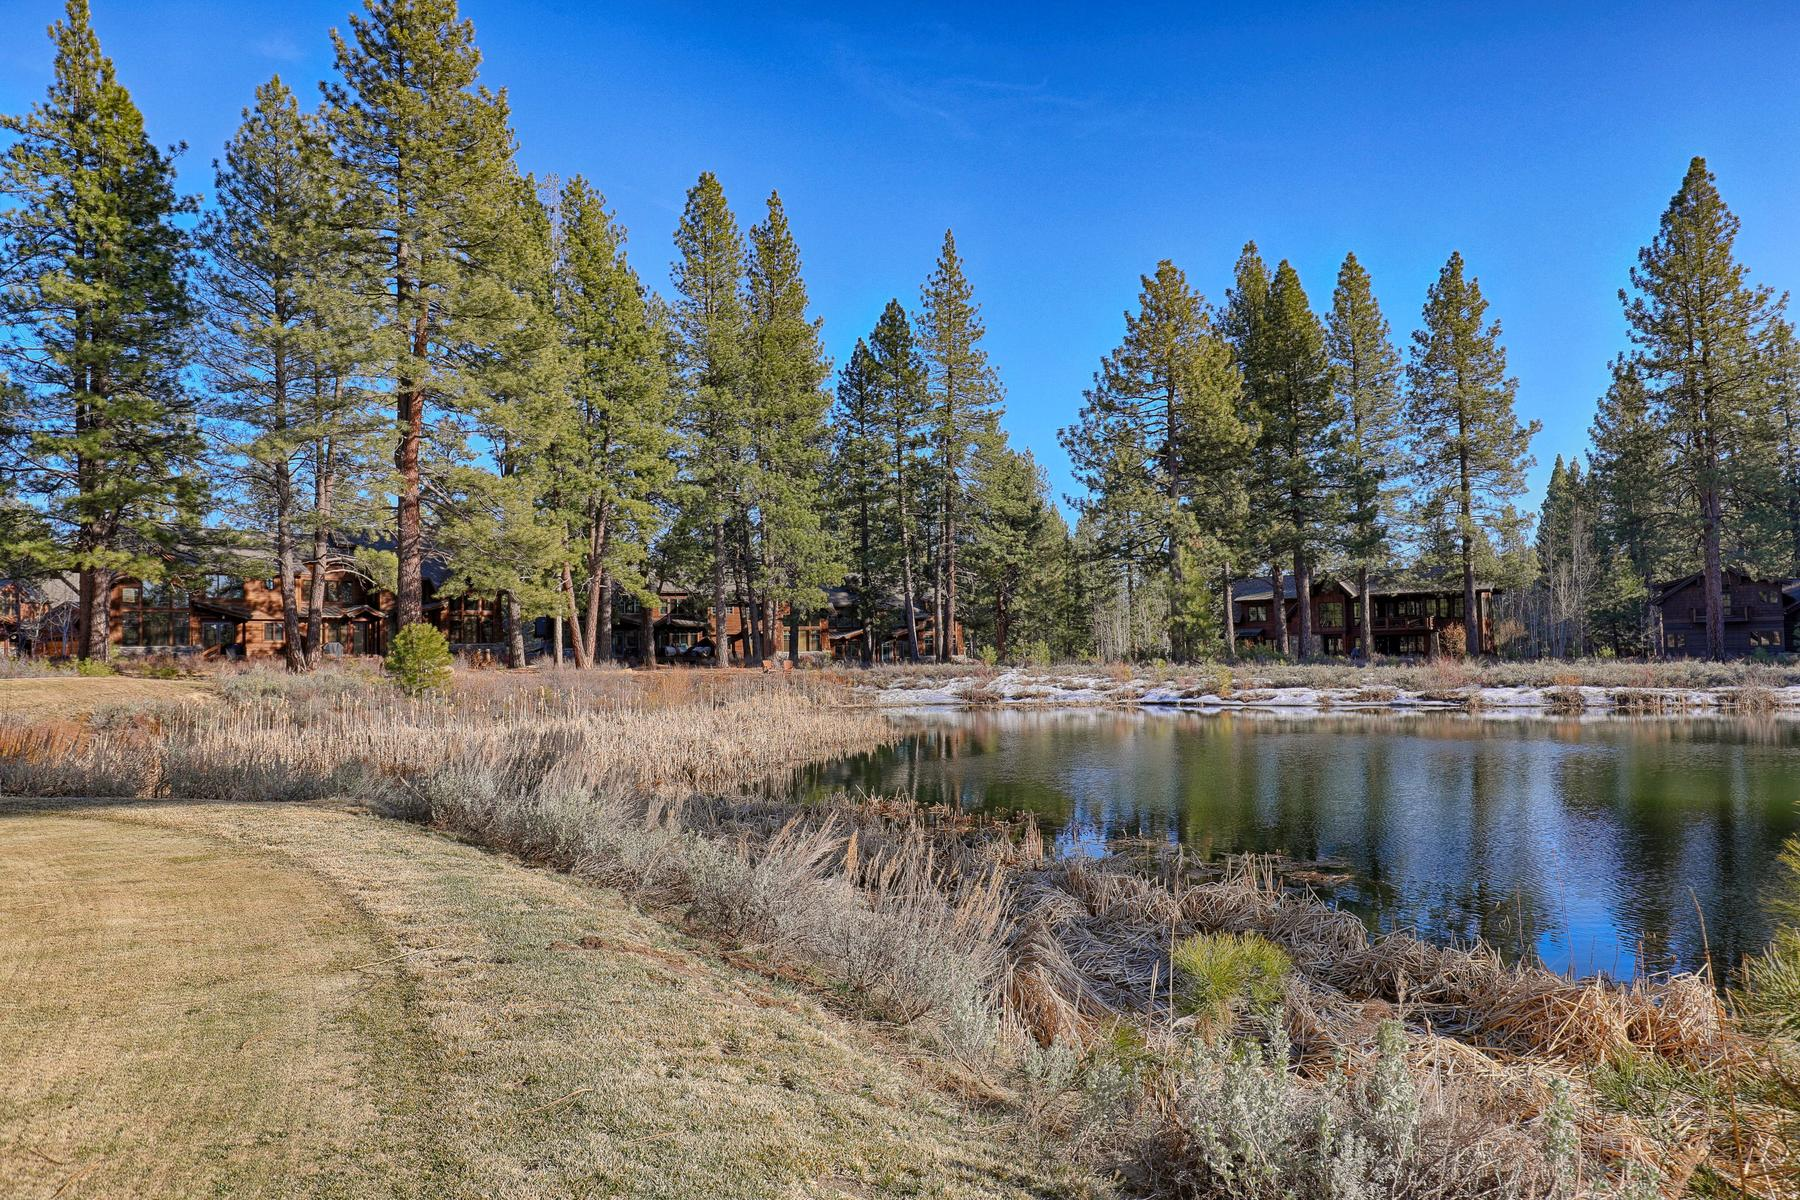 Additional photo for property listing at 13170 Fairway Drive Truckee California 96161 13170 Fairway Drive Truckee, California 96161 United States